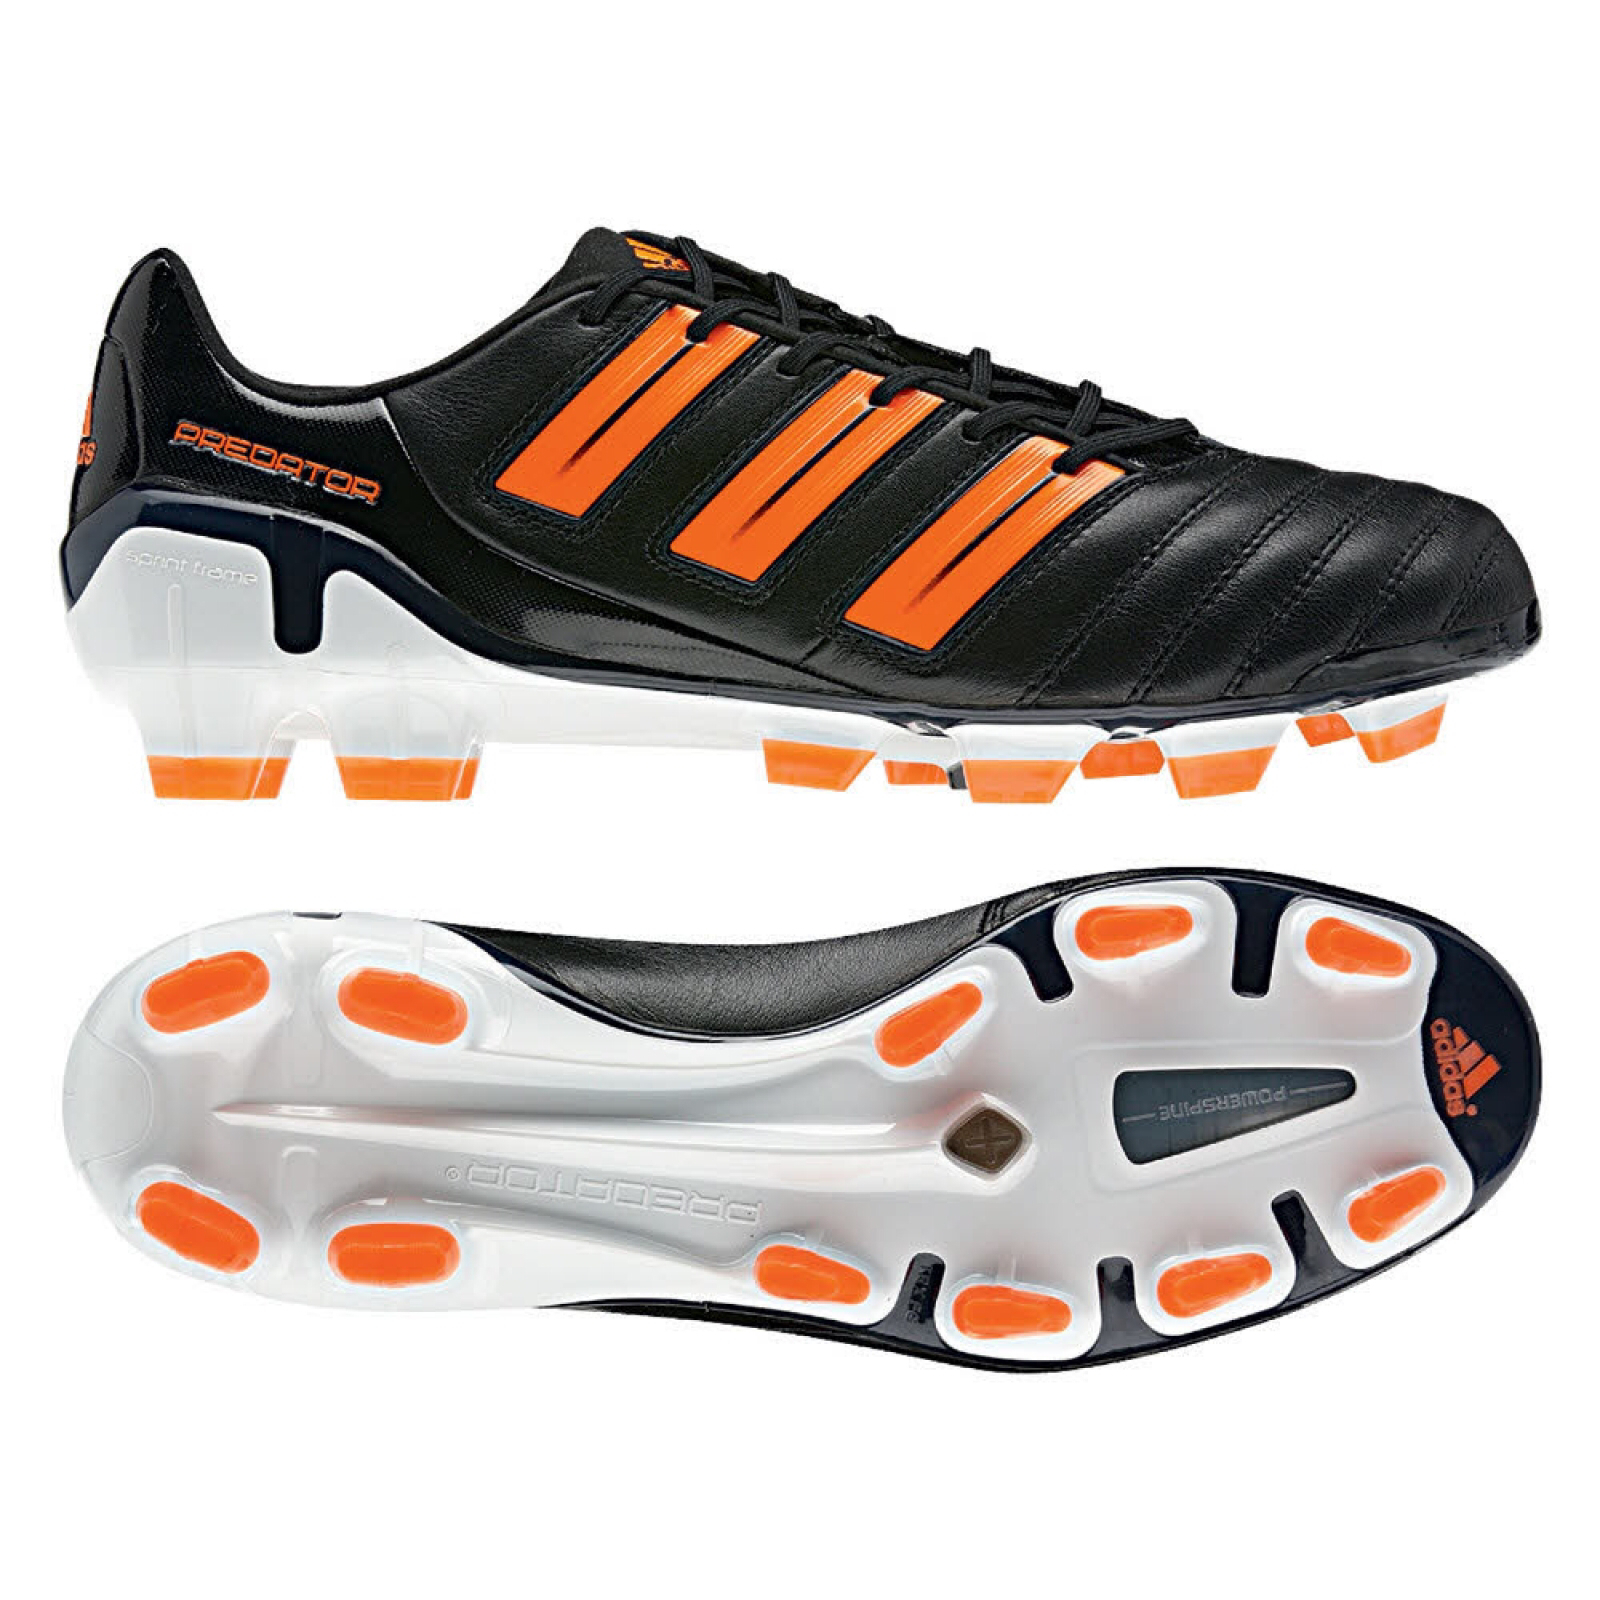 b90fb0d022a7 Adidas Adipower Predator TRX FG Black Orange - The Football Factory